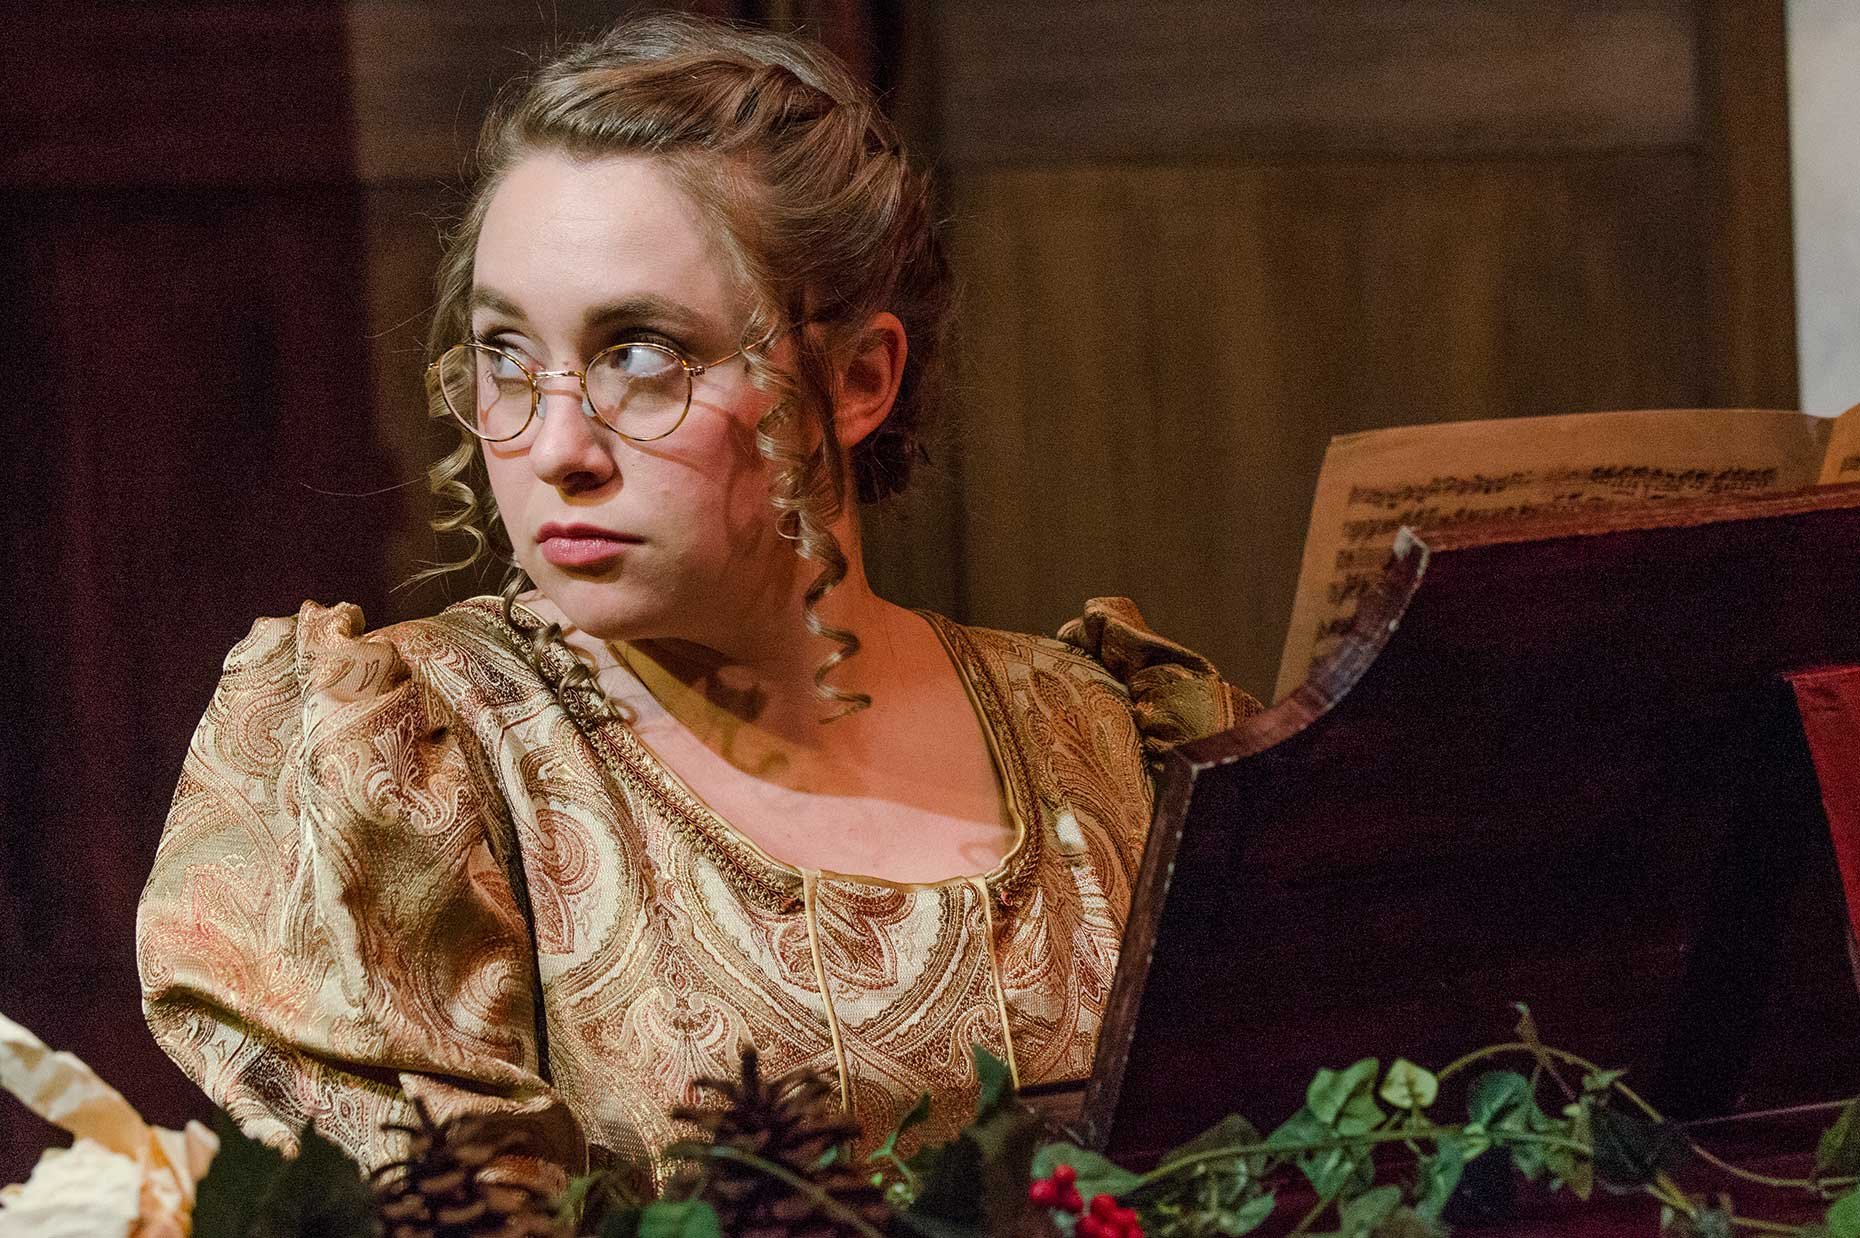 rick-barbour-director-miss-bennet-christmas-at-pemberley-boulder-ensemble-theatre-10